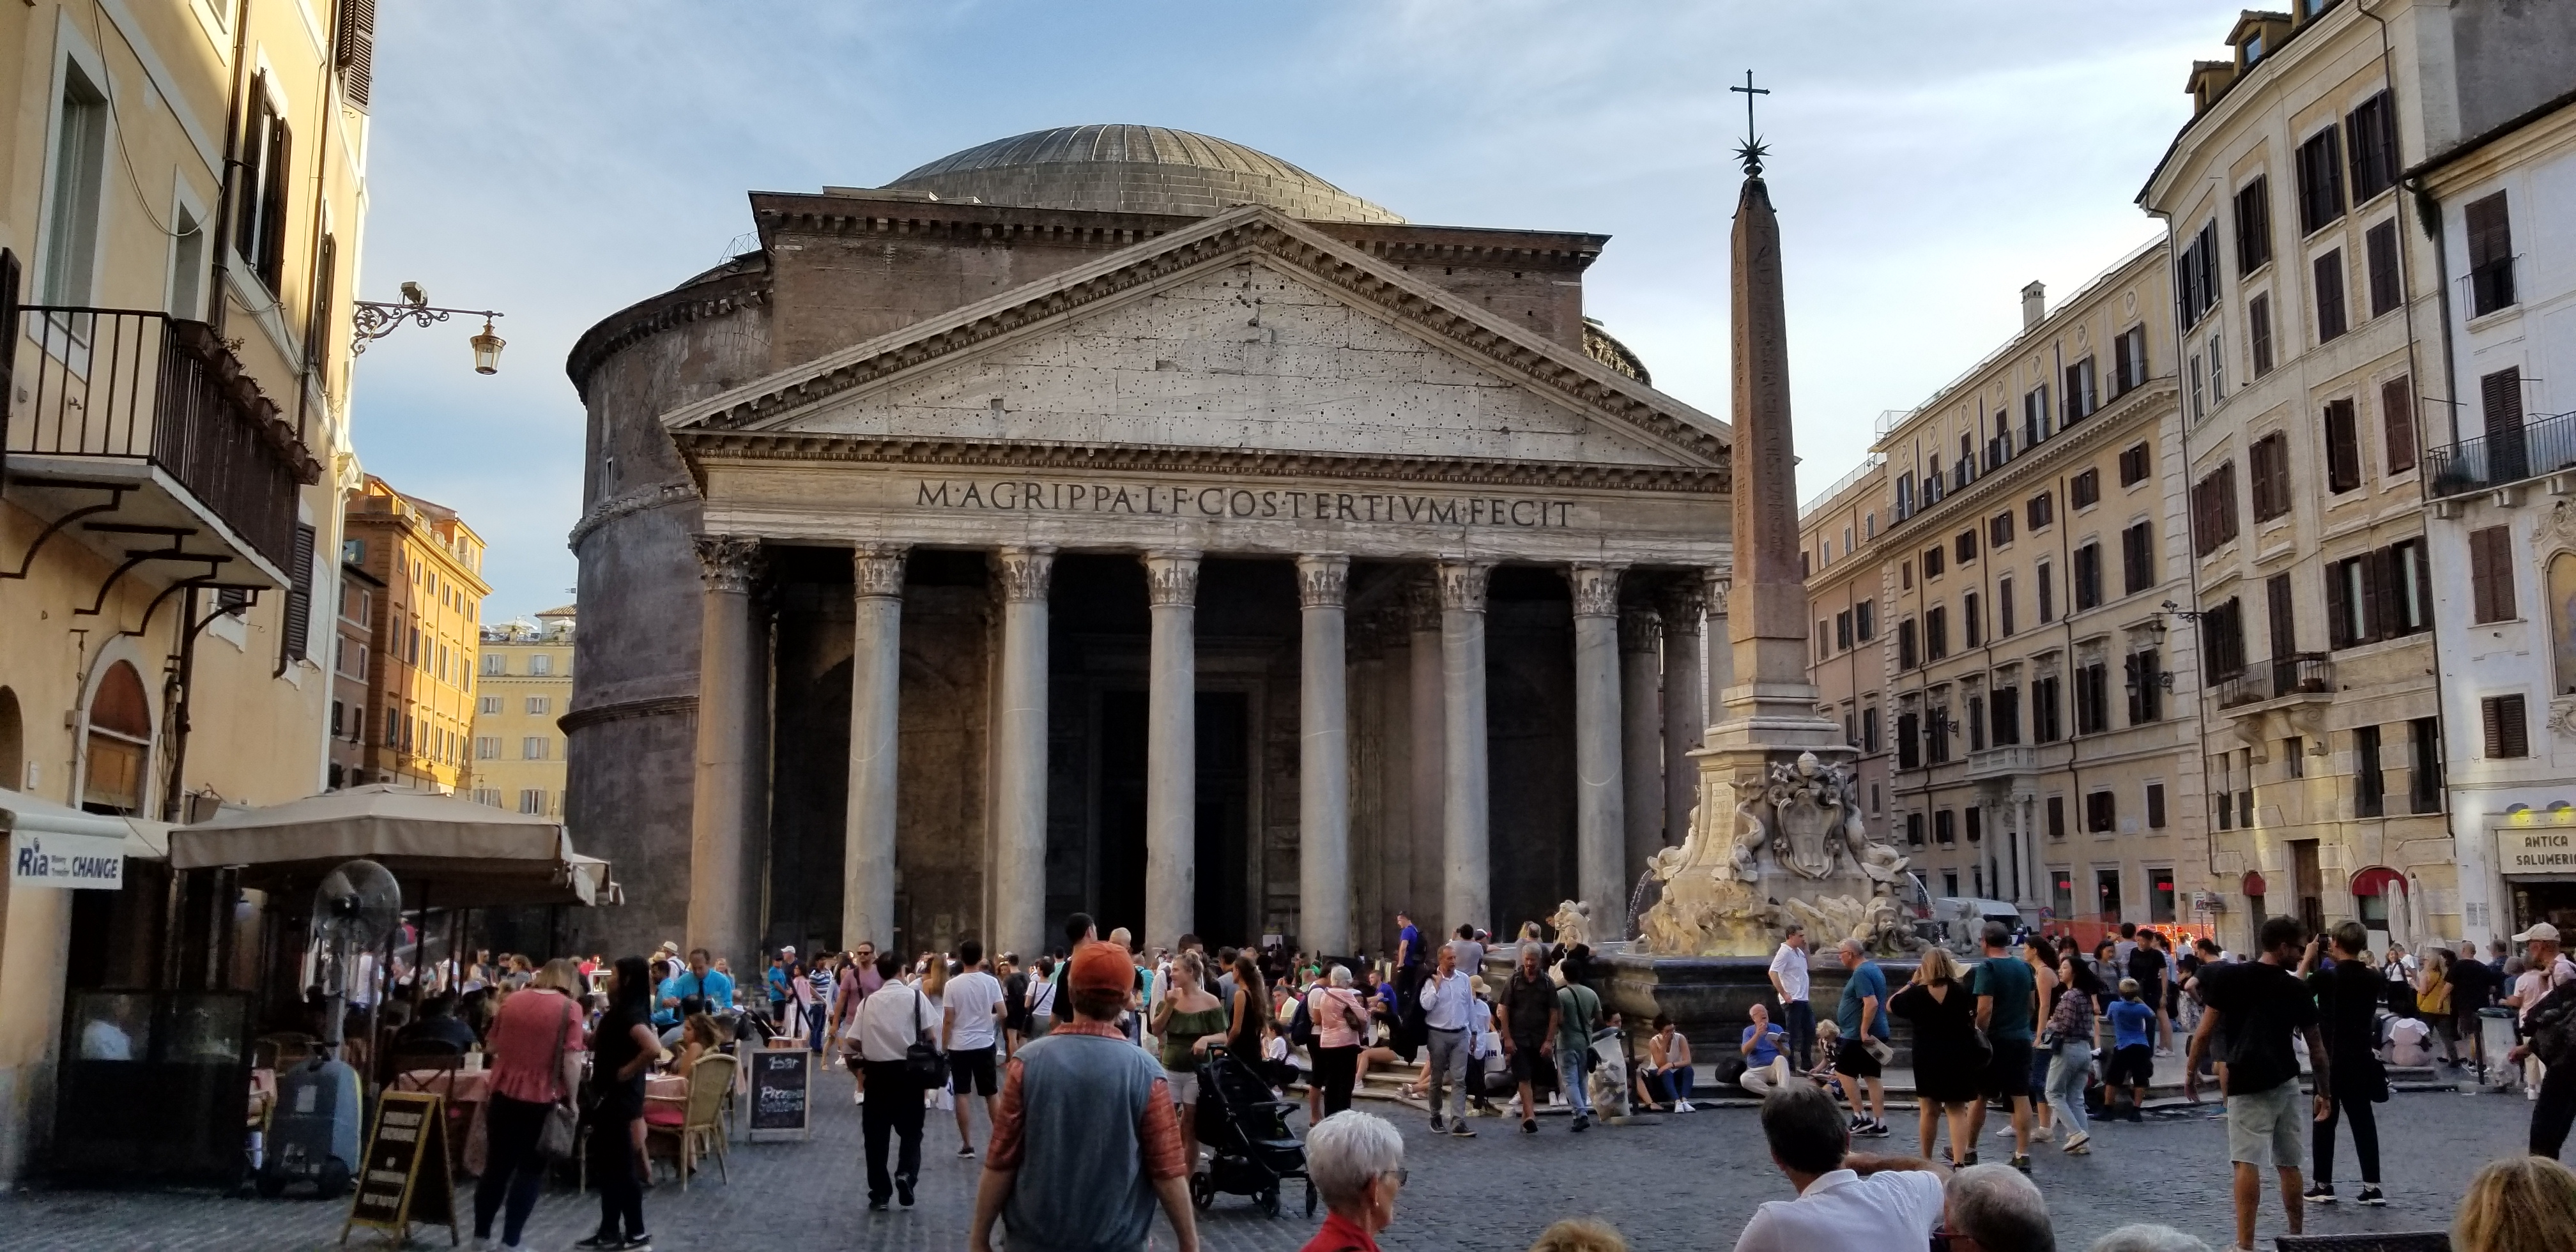 Pantheon, Rome - Senior Trip to Rome